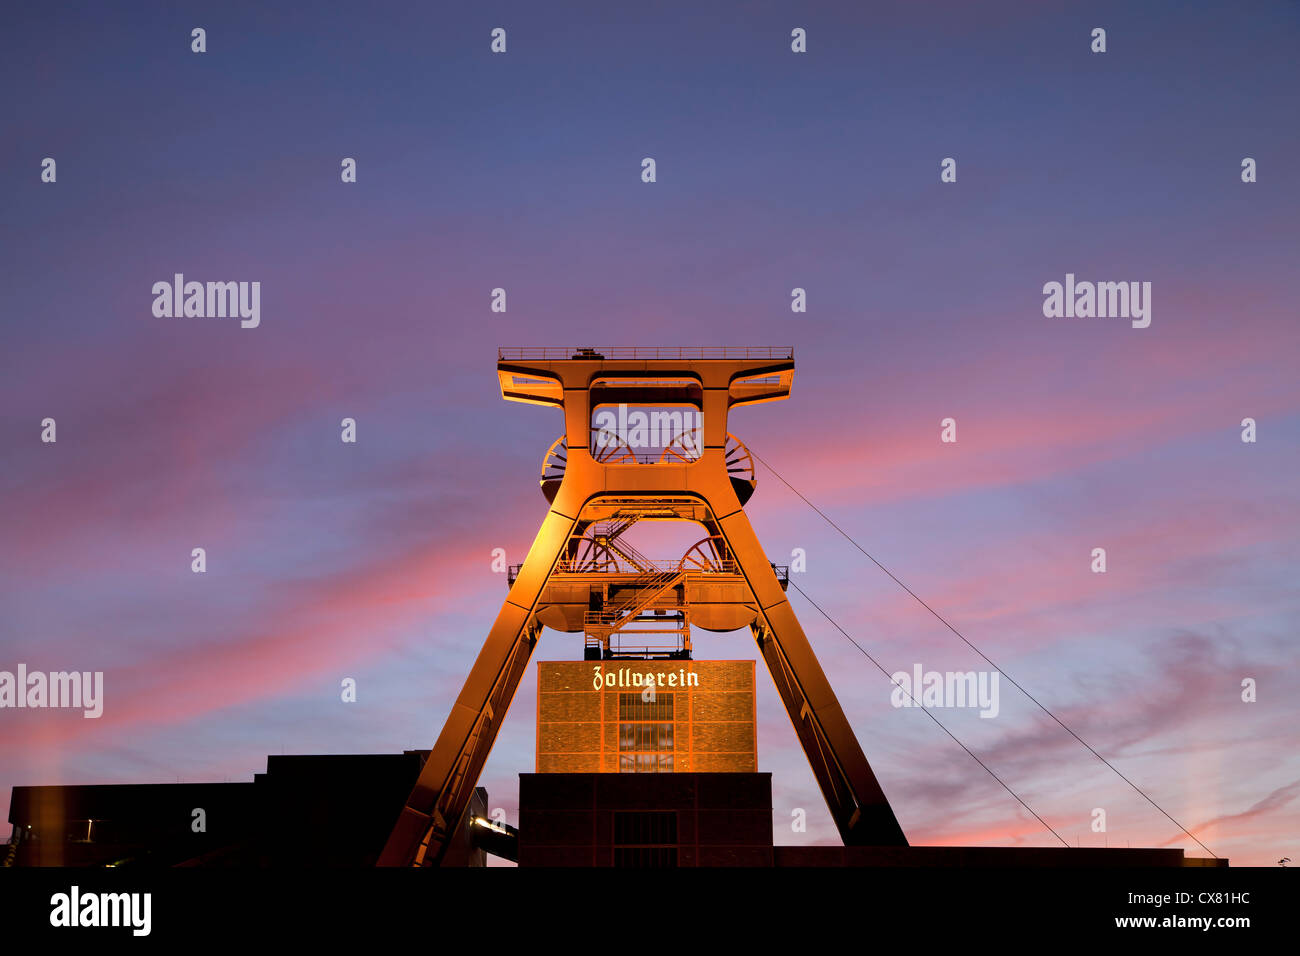 colourful sunset at the winding tower of shaft 12 at Zollverein Coal Mine Industrial Complex in Essen, Germany - Stock Image